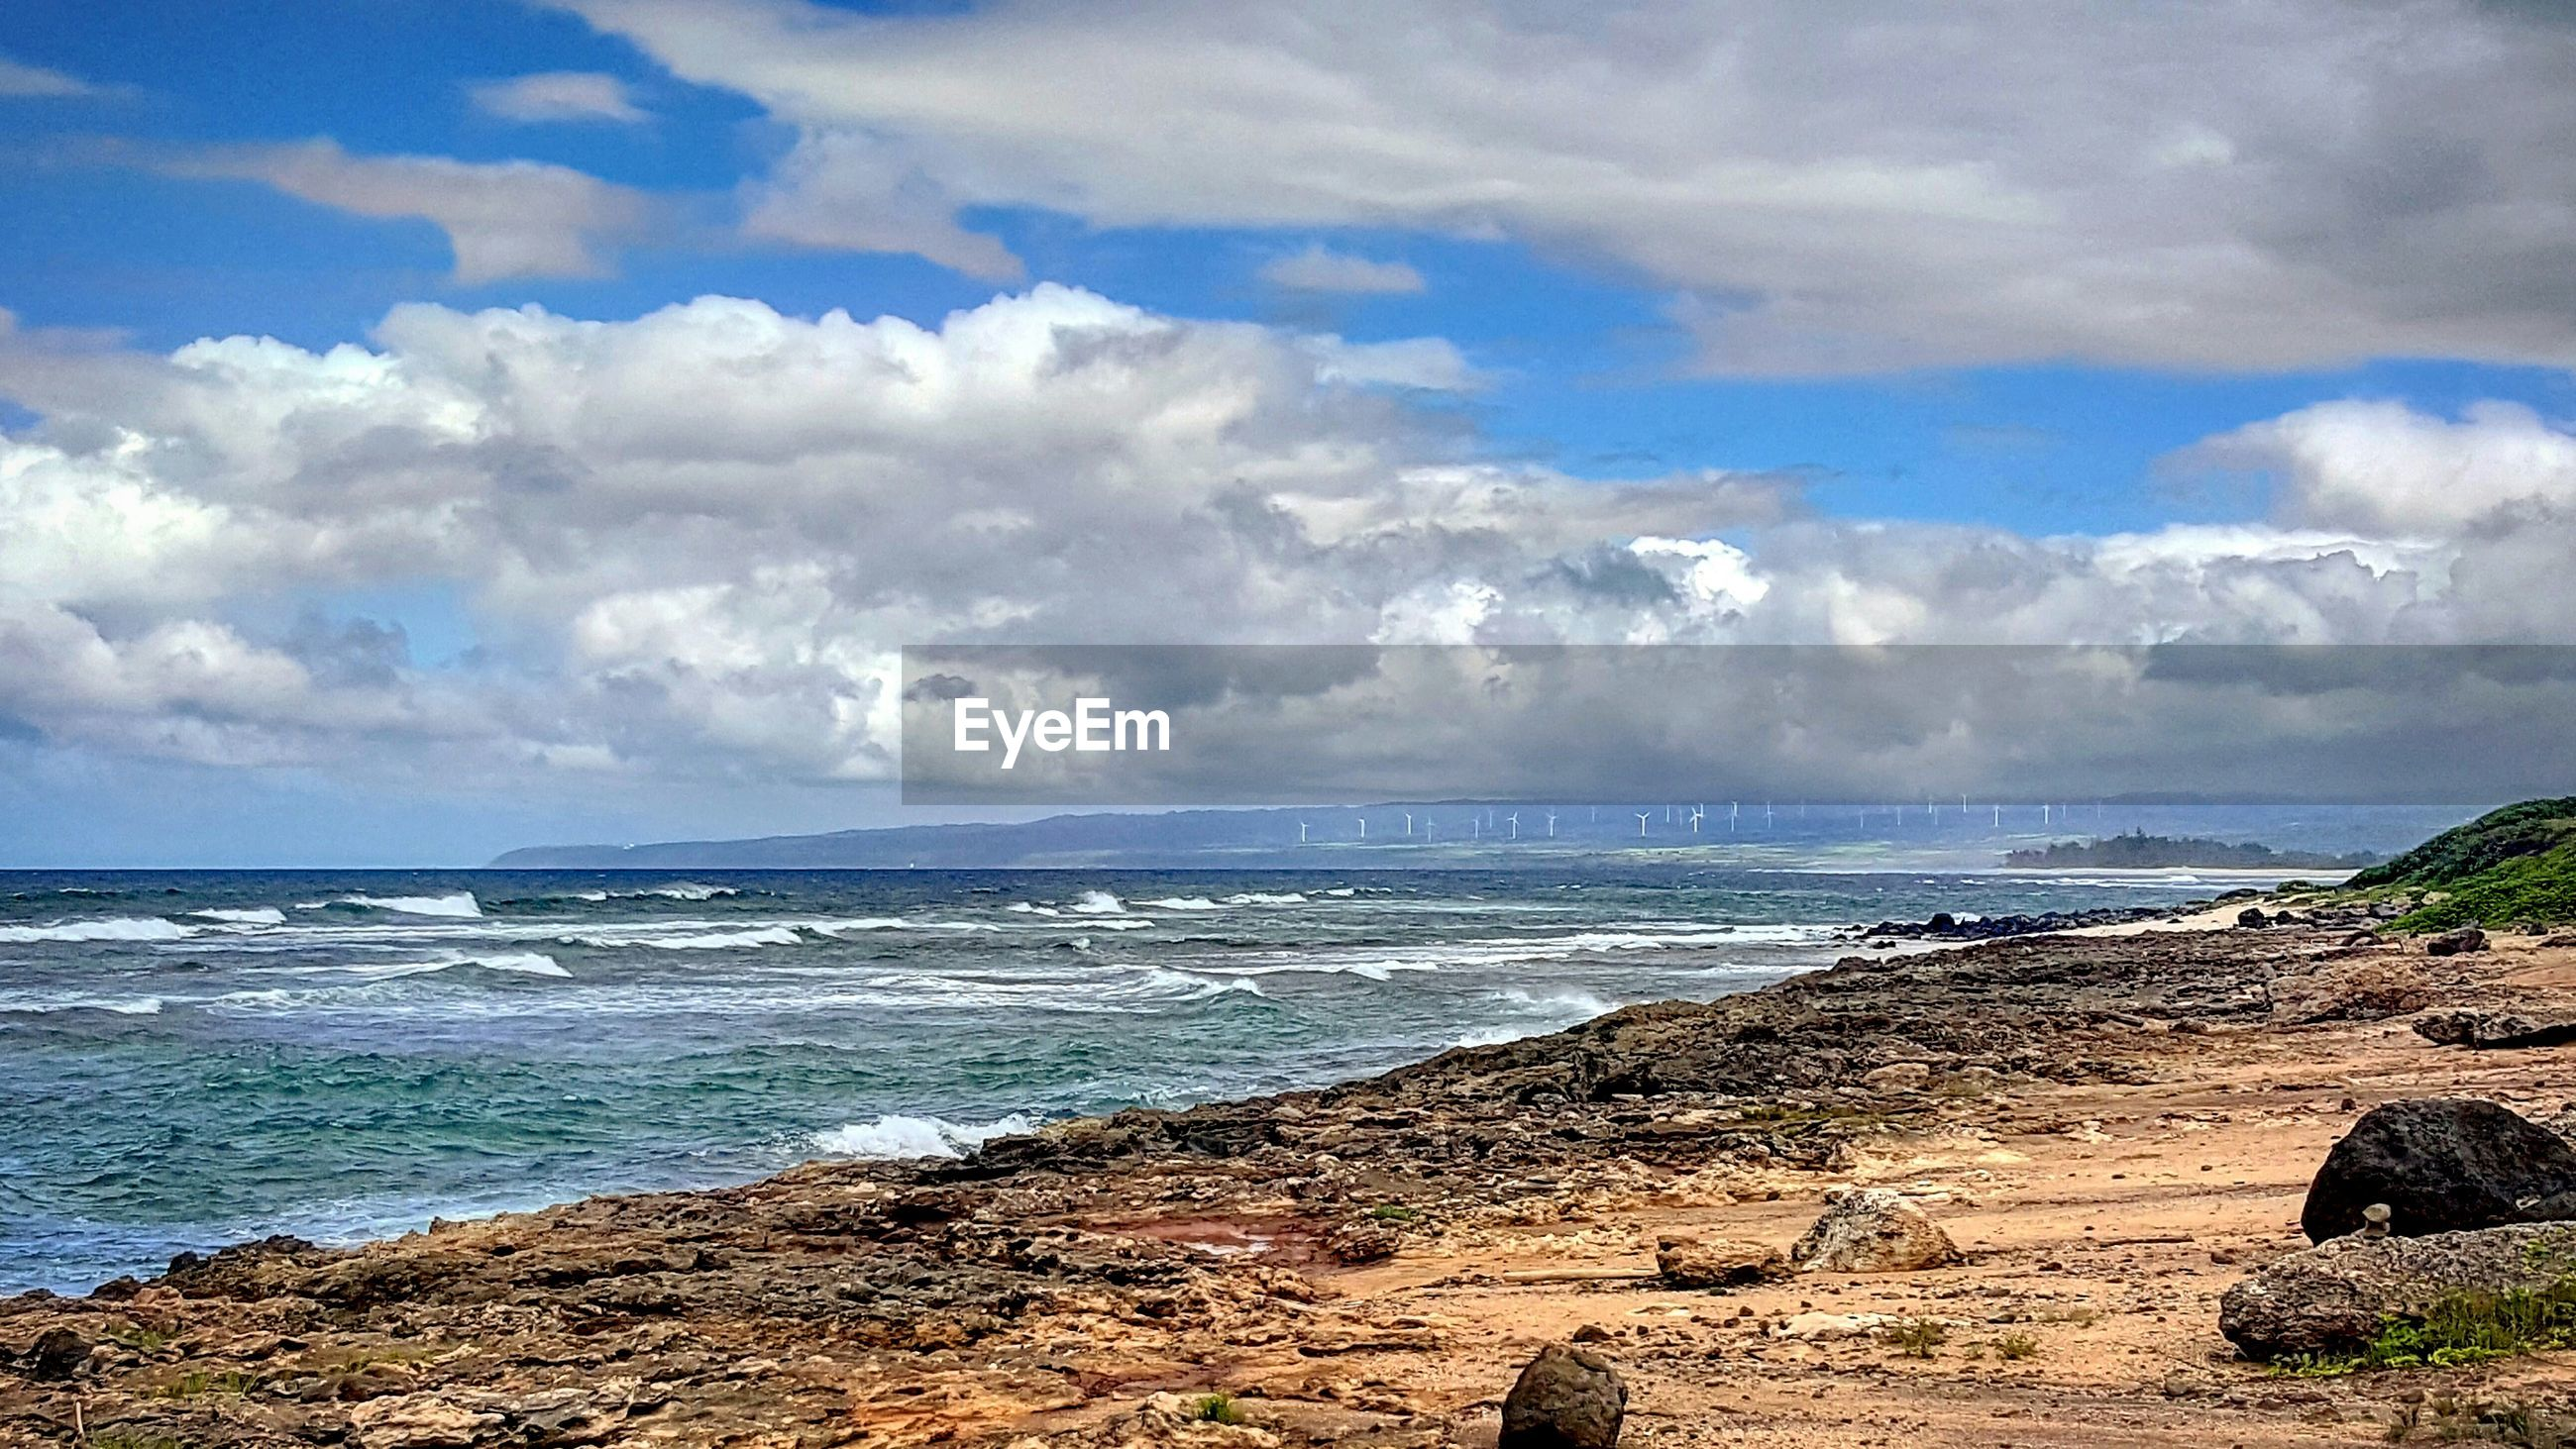 Scenic view of rocky coastline against cloudy sky